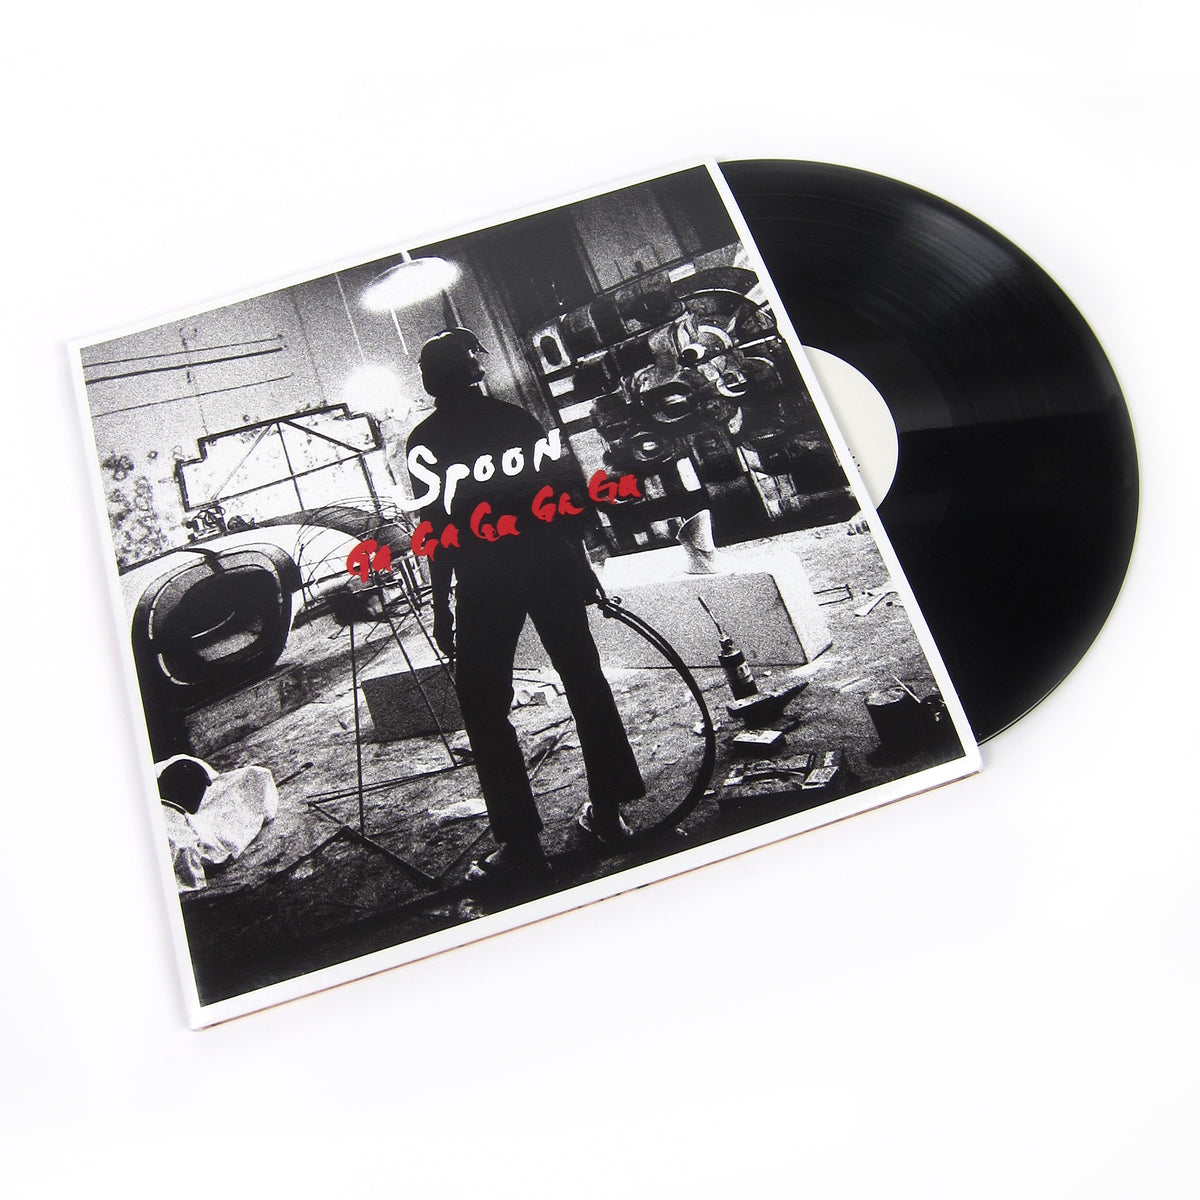 Spoon: Ga Ga Ga Ga Ga - 10th Anniversary Edition Vinyl 2LP